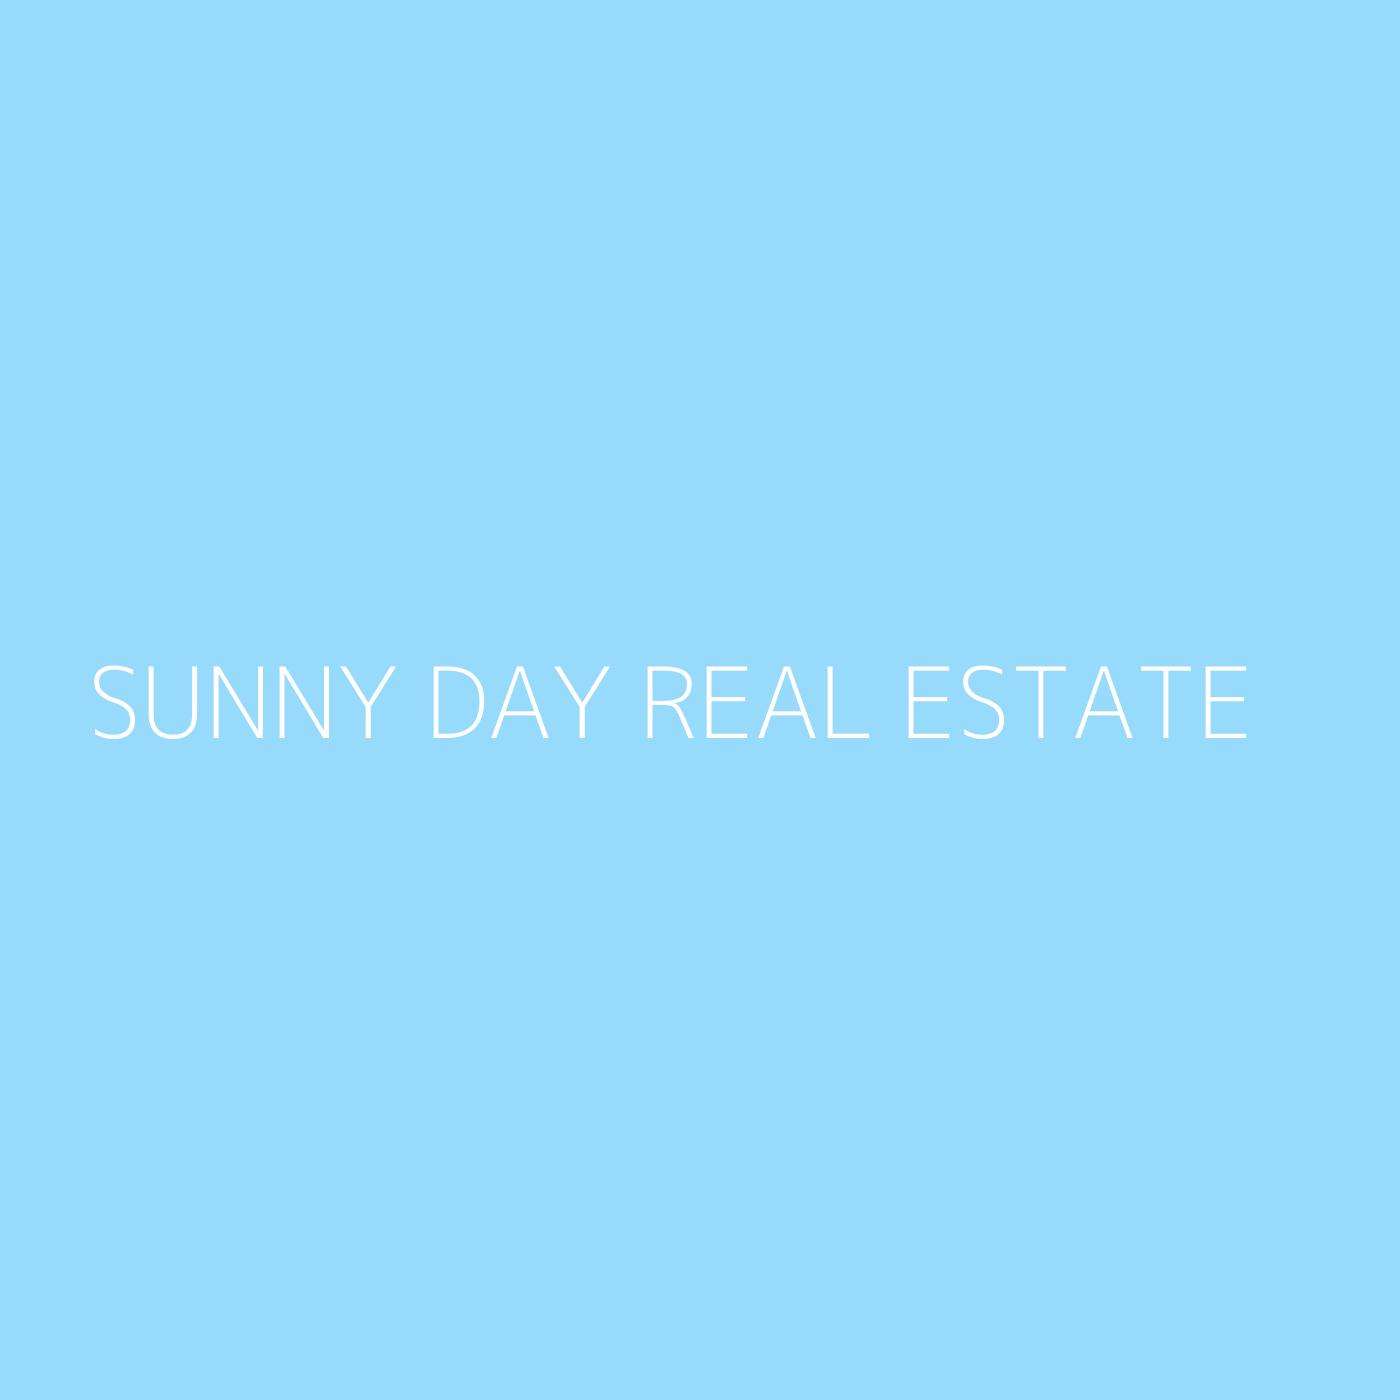 Sunny Day Real Estate Playlist Artwork